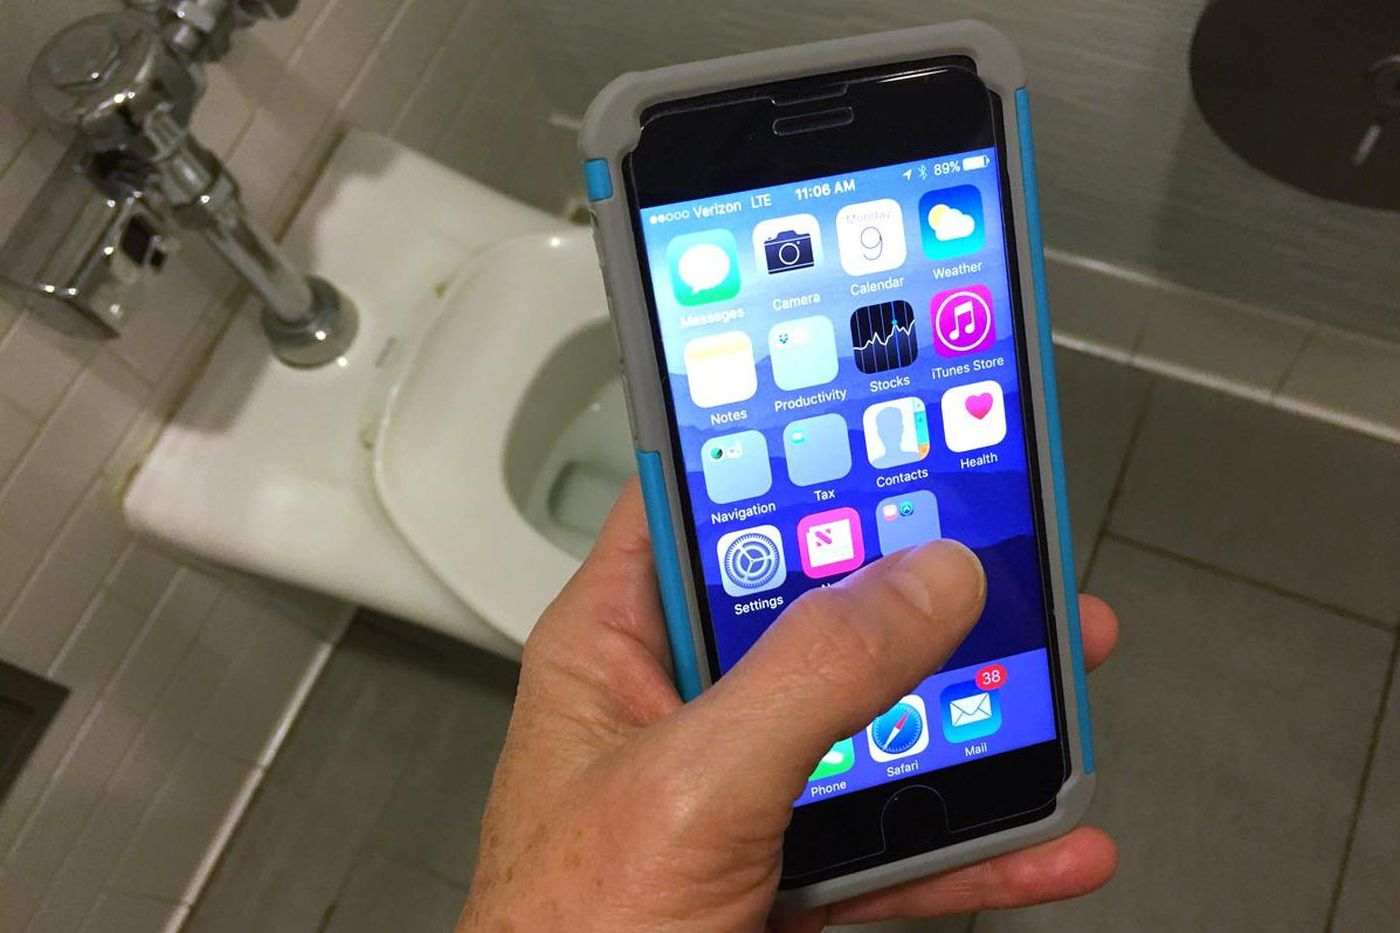 Using your phone in the bathroom could make you sick